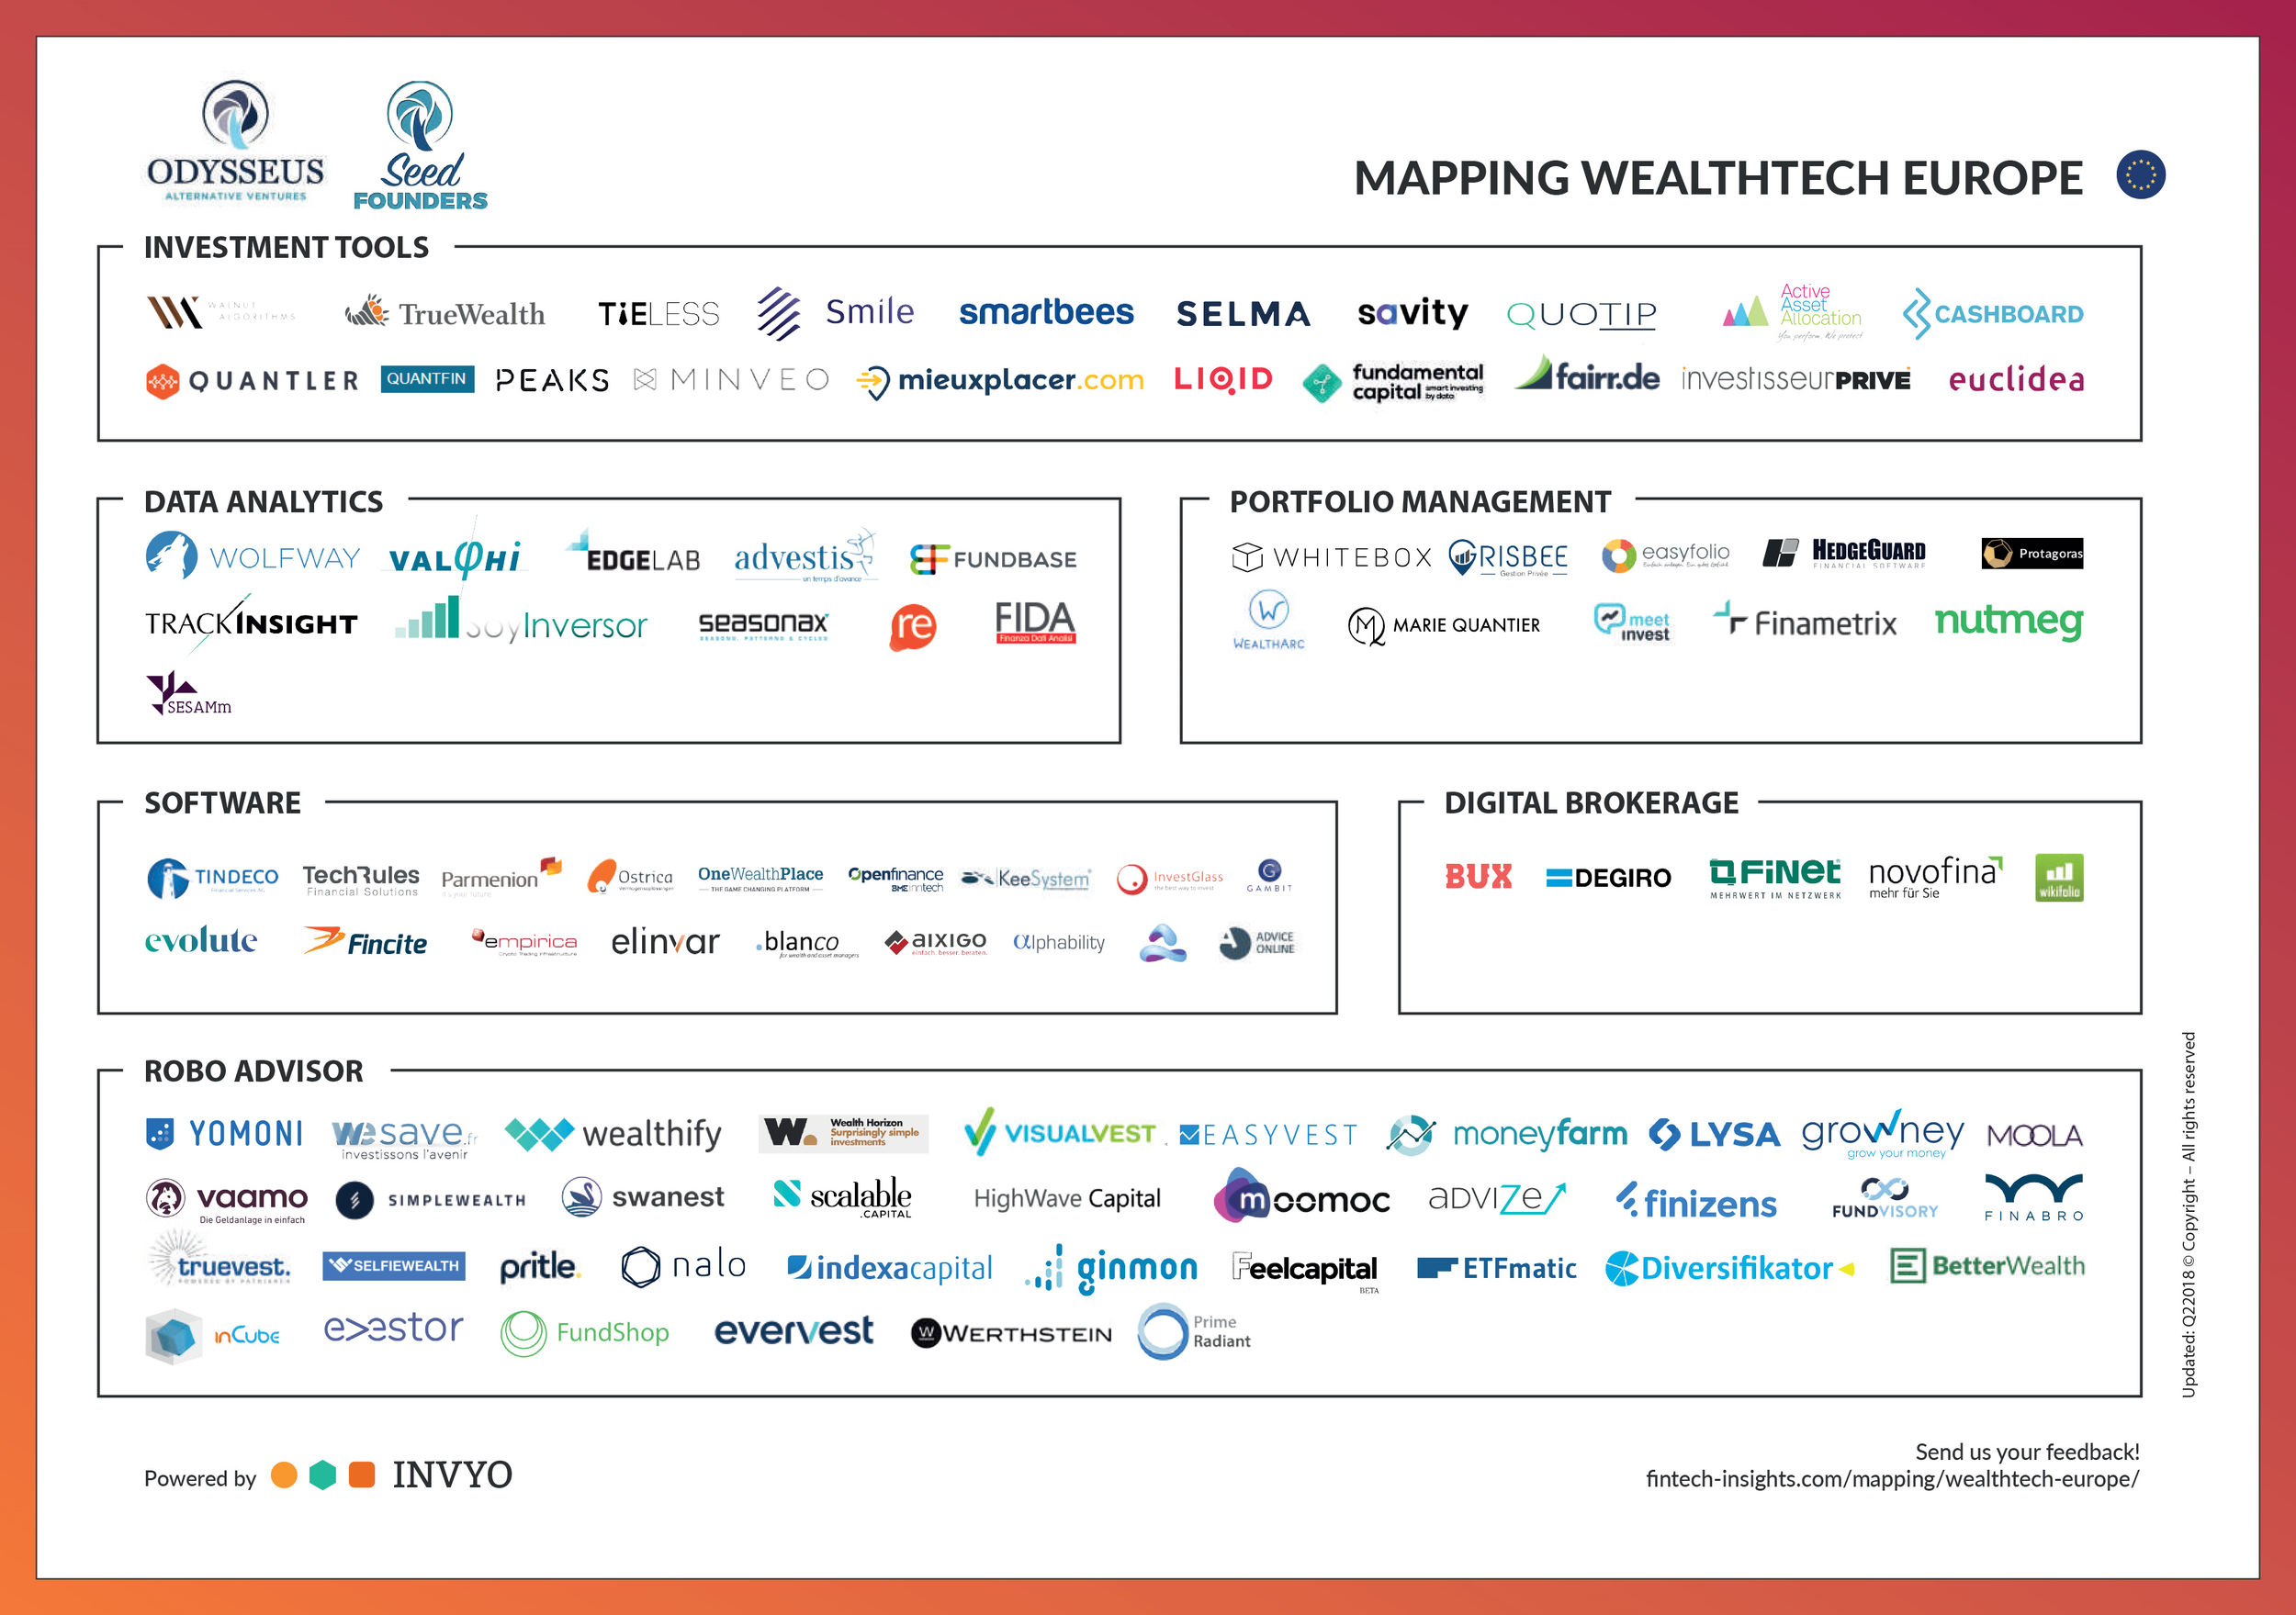 Mapping_wealthtech_europe_2018